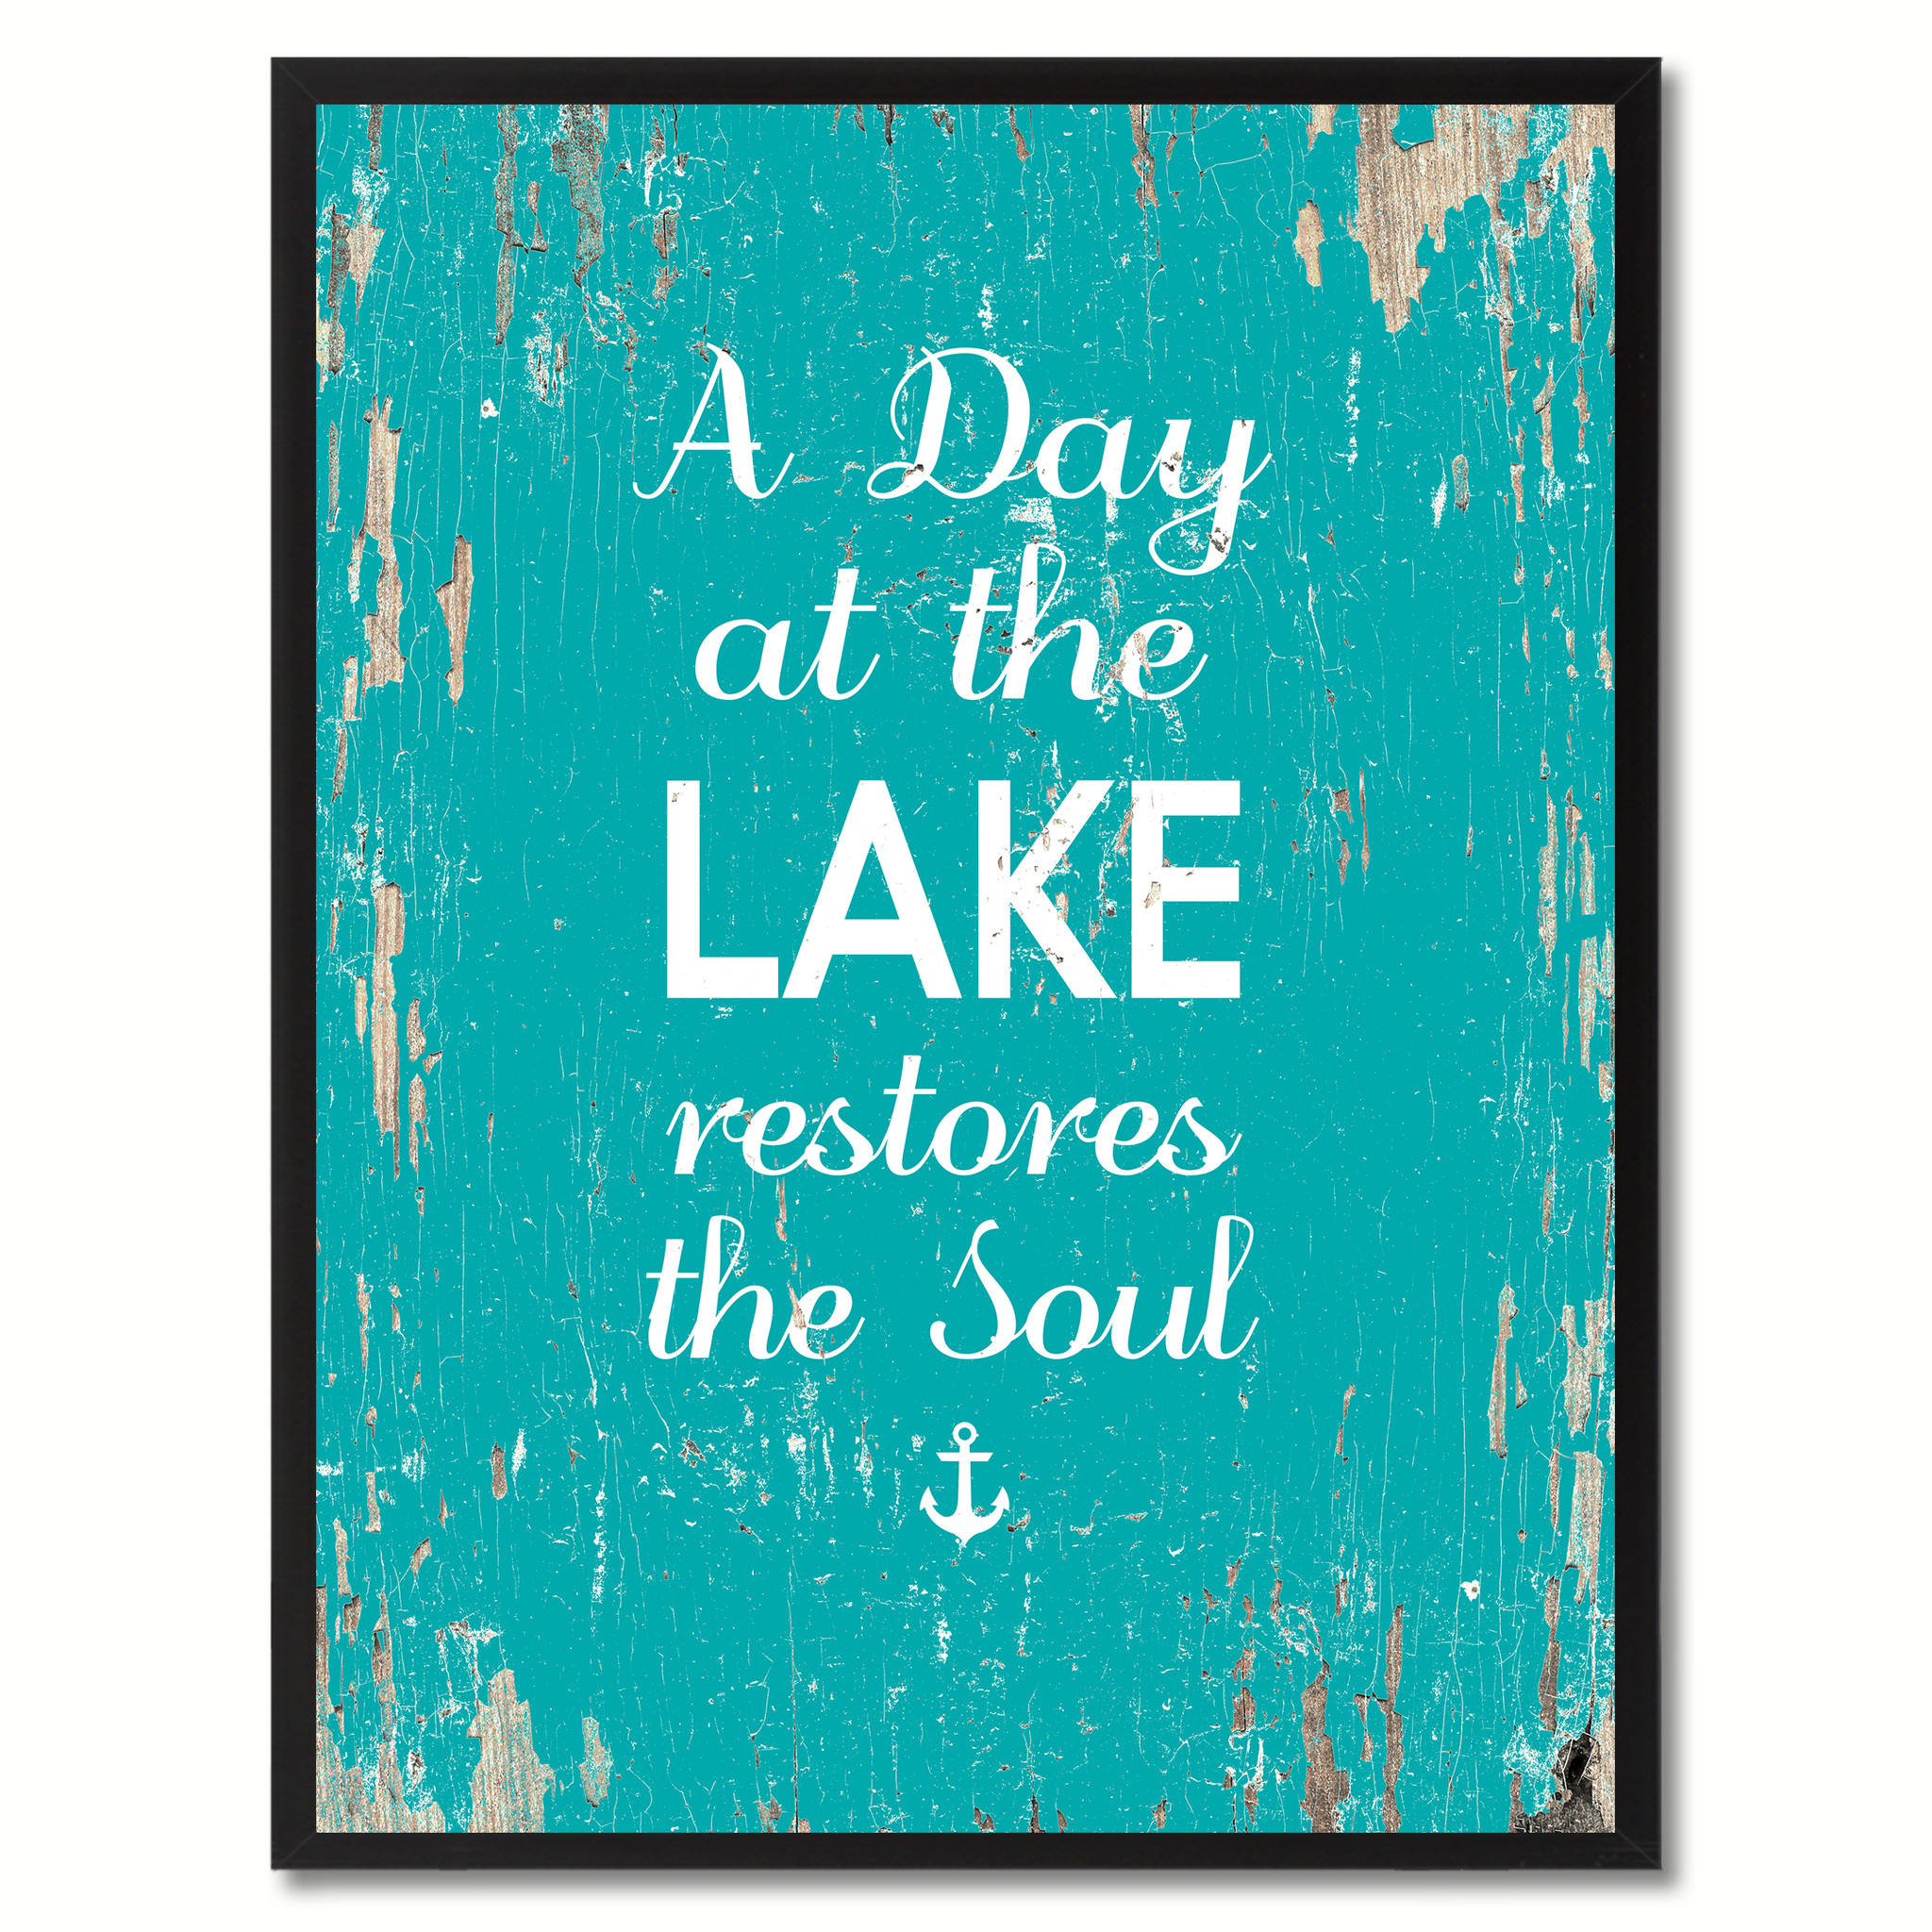 "A Day At The Lake Restores The Soul Saying Canvas Print with Picture Frame Home Decor Wall Art Gifts - 7""x9\"""